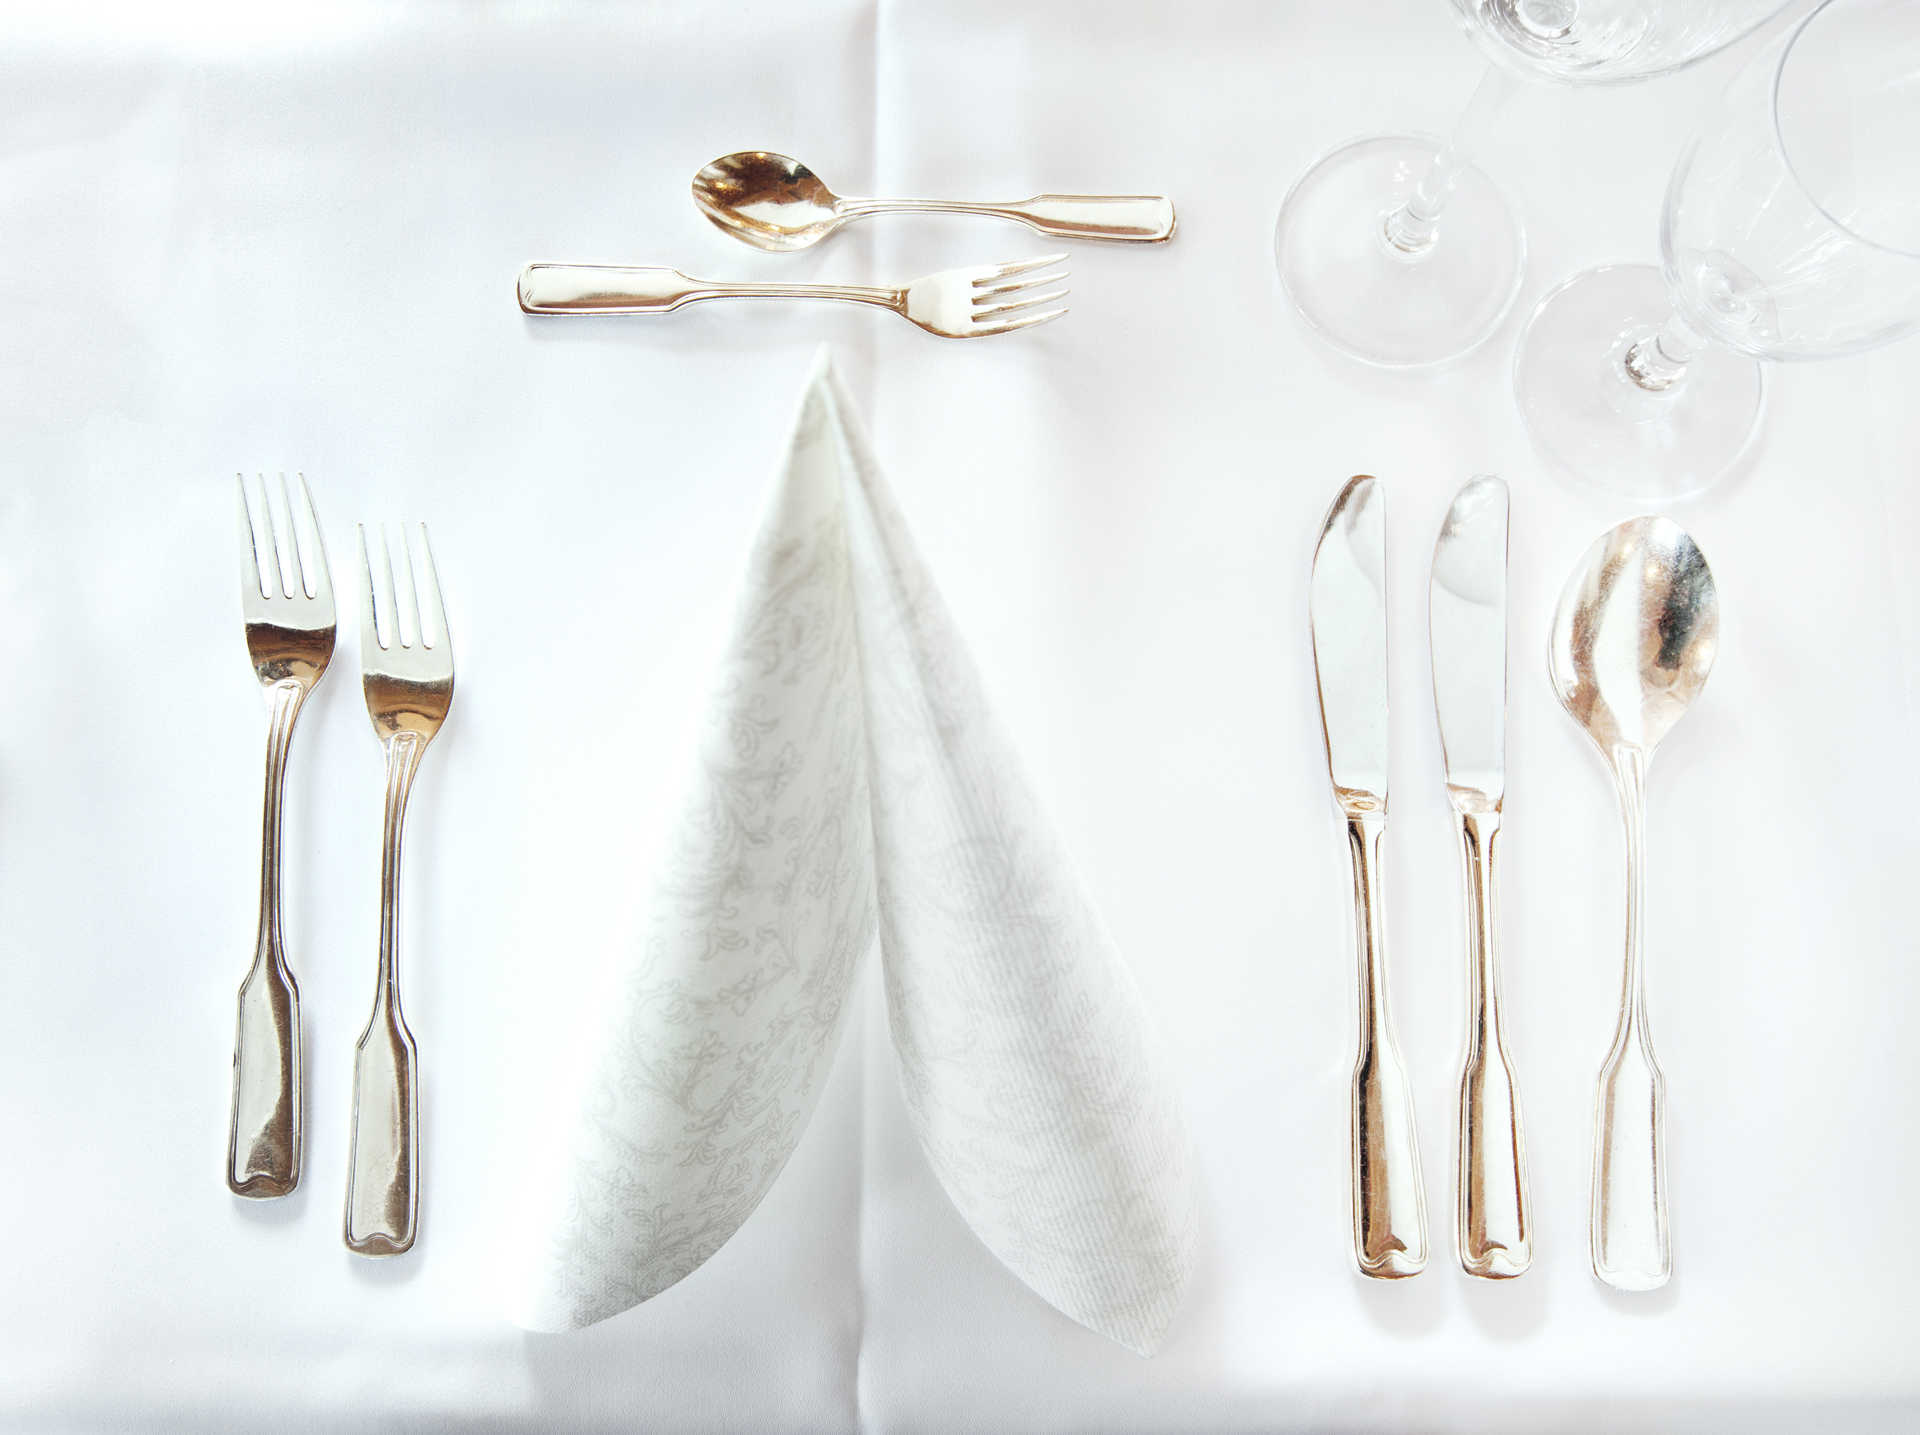 Cutlery, napkin, and wine glasses on a table